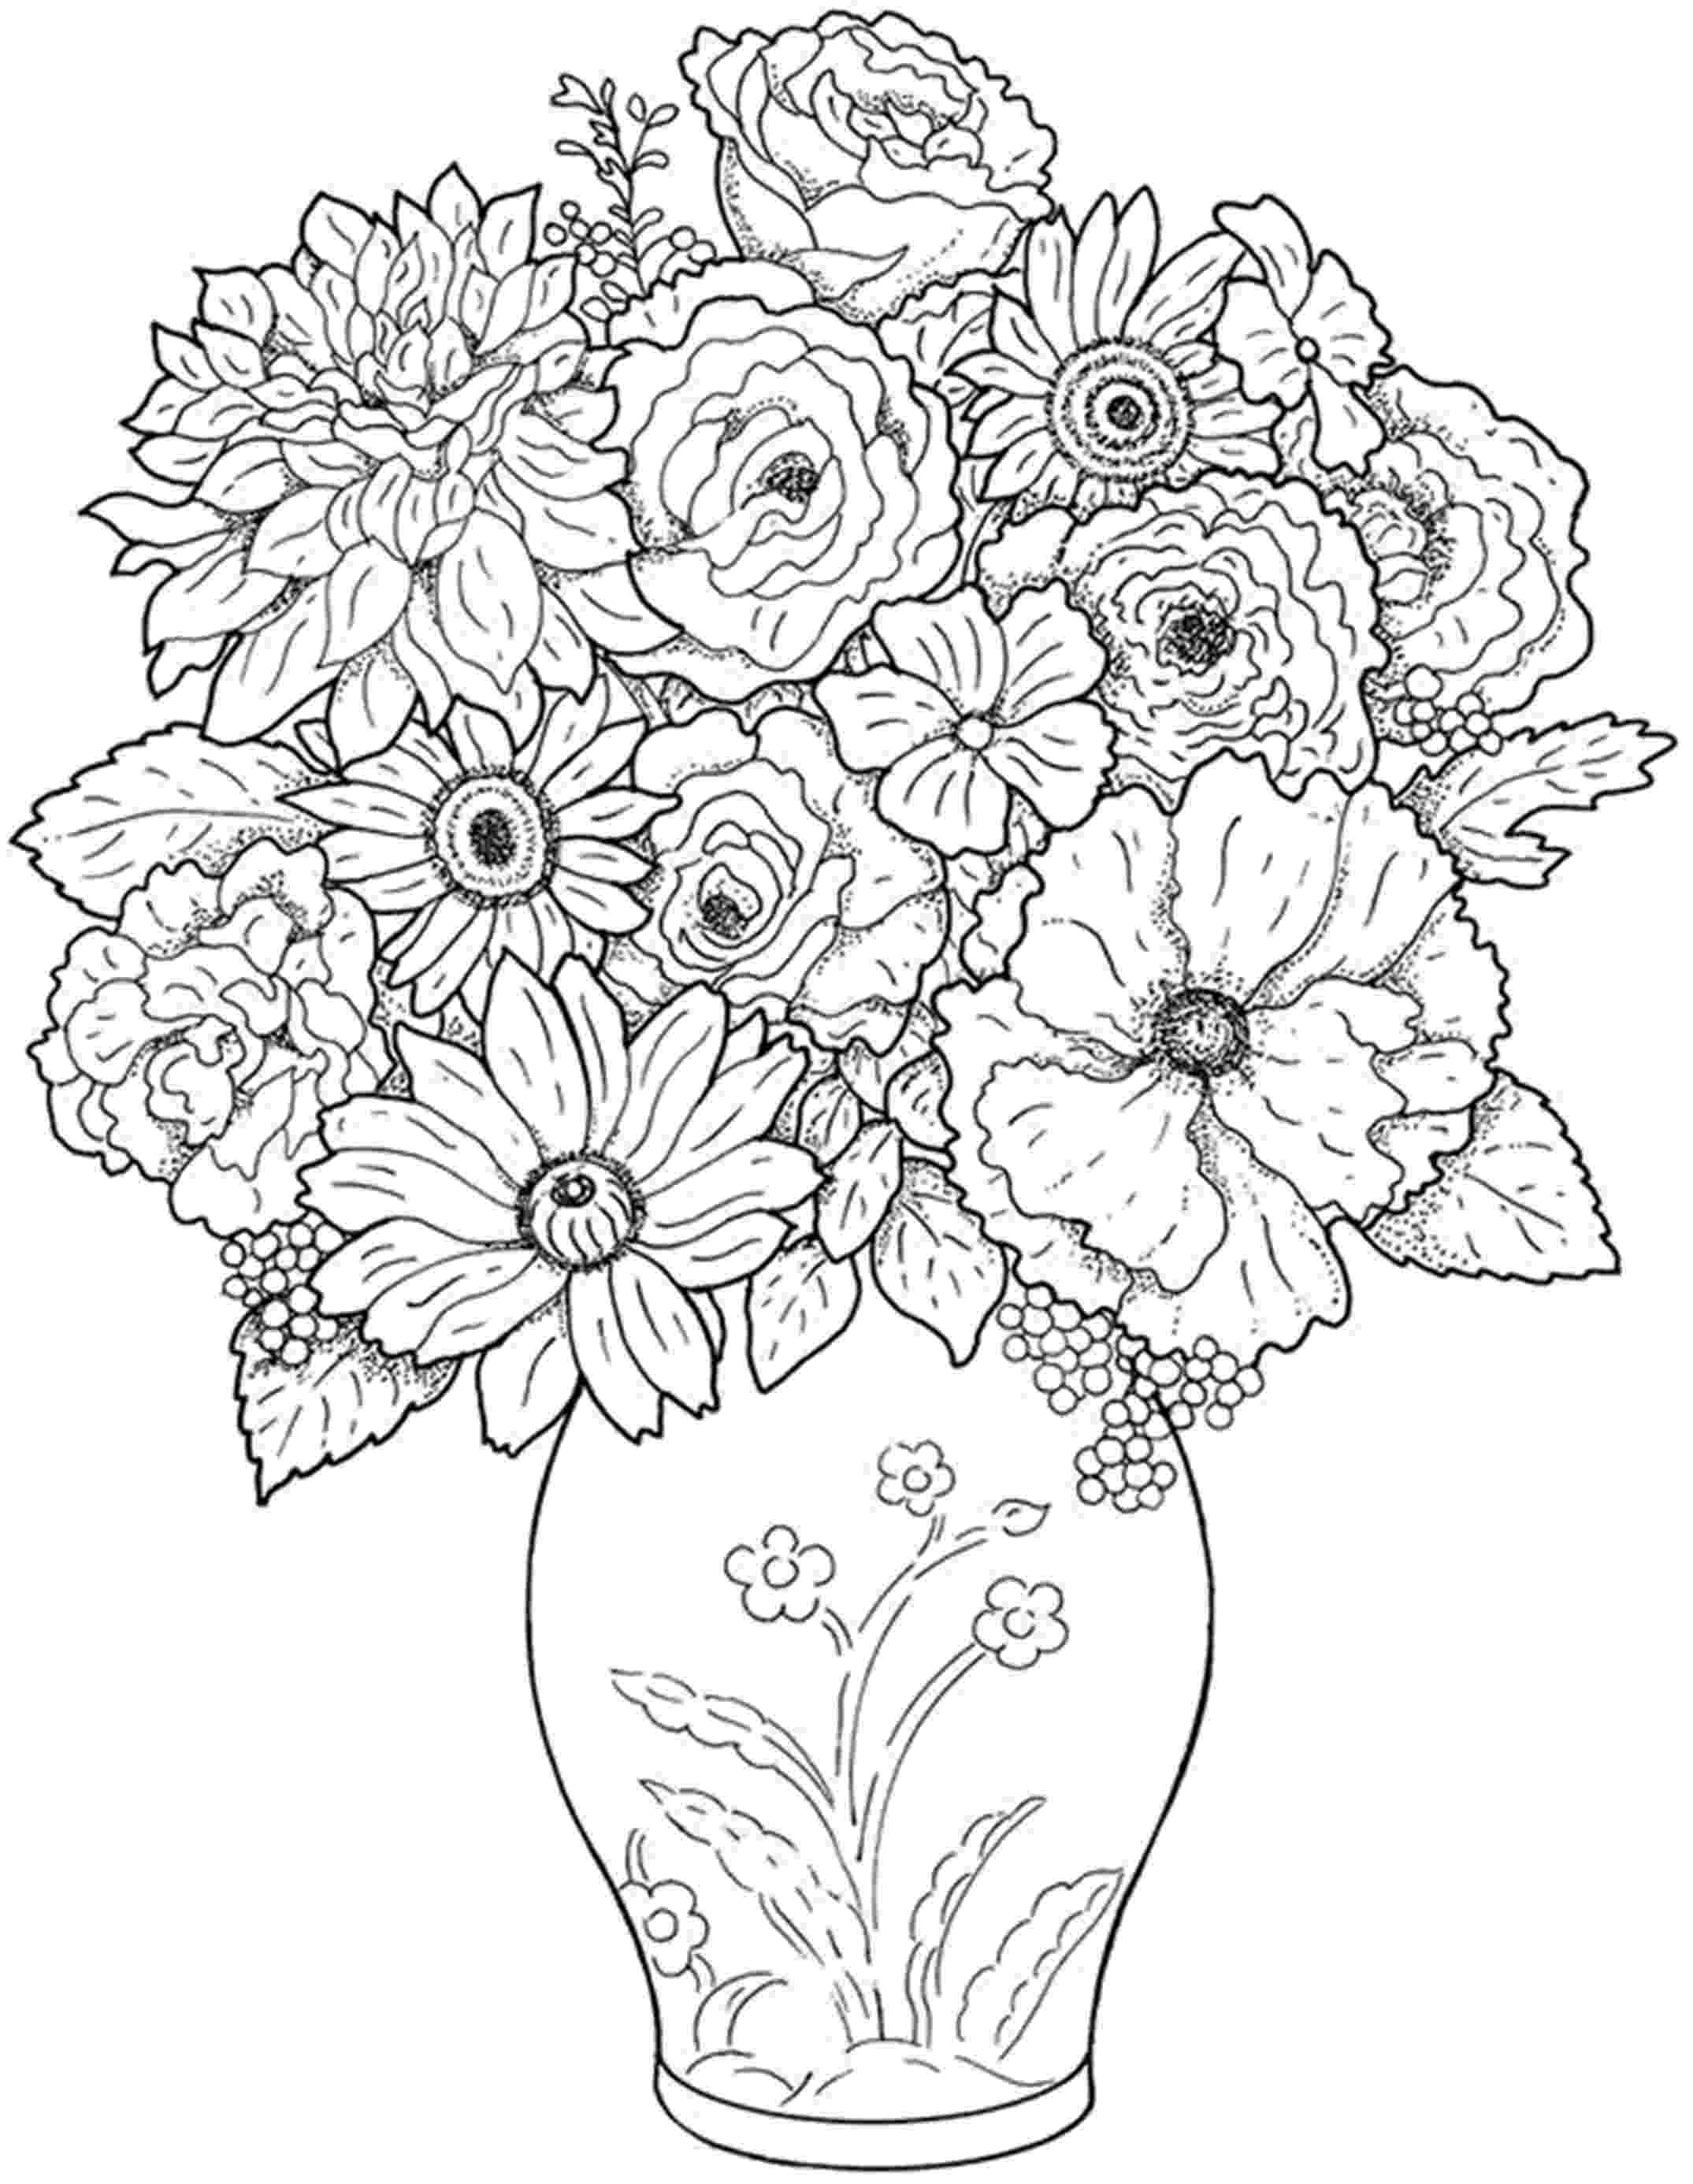 flower coloring sheets for kids free printable flower coloring pages for kids best for kids sheets flower coloring